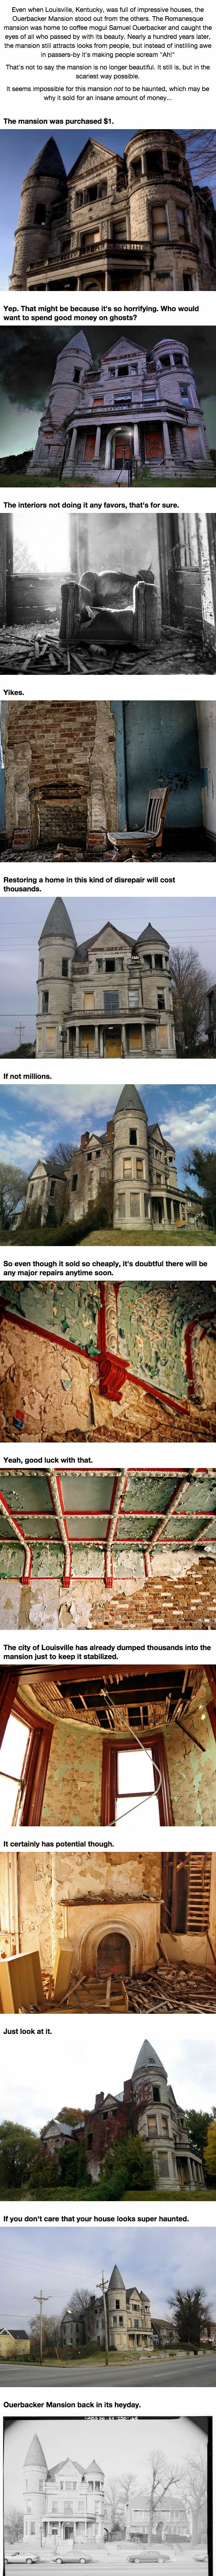 Creepy mansion sold for $1